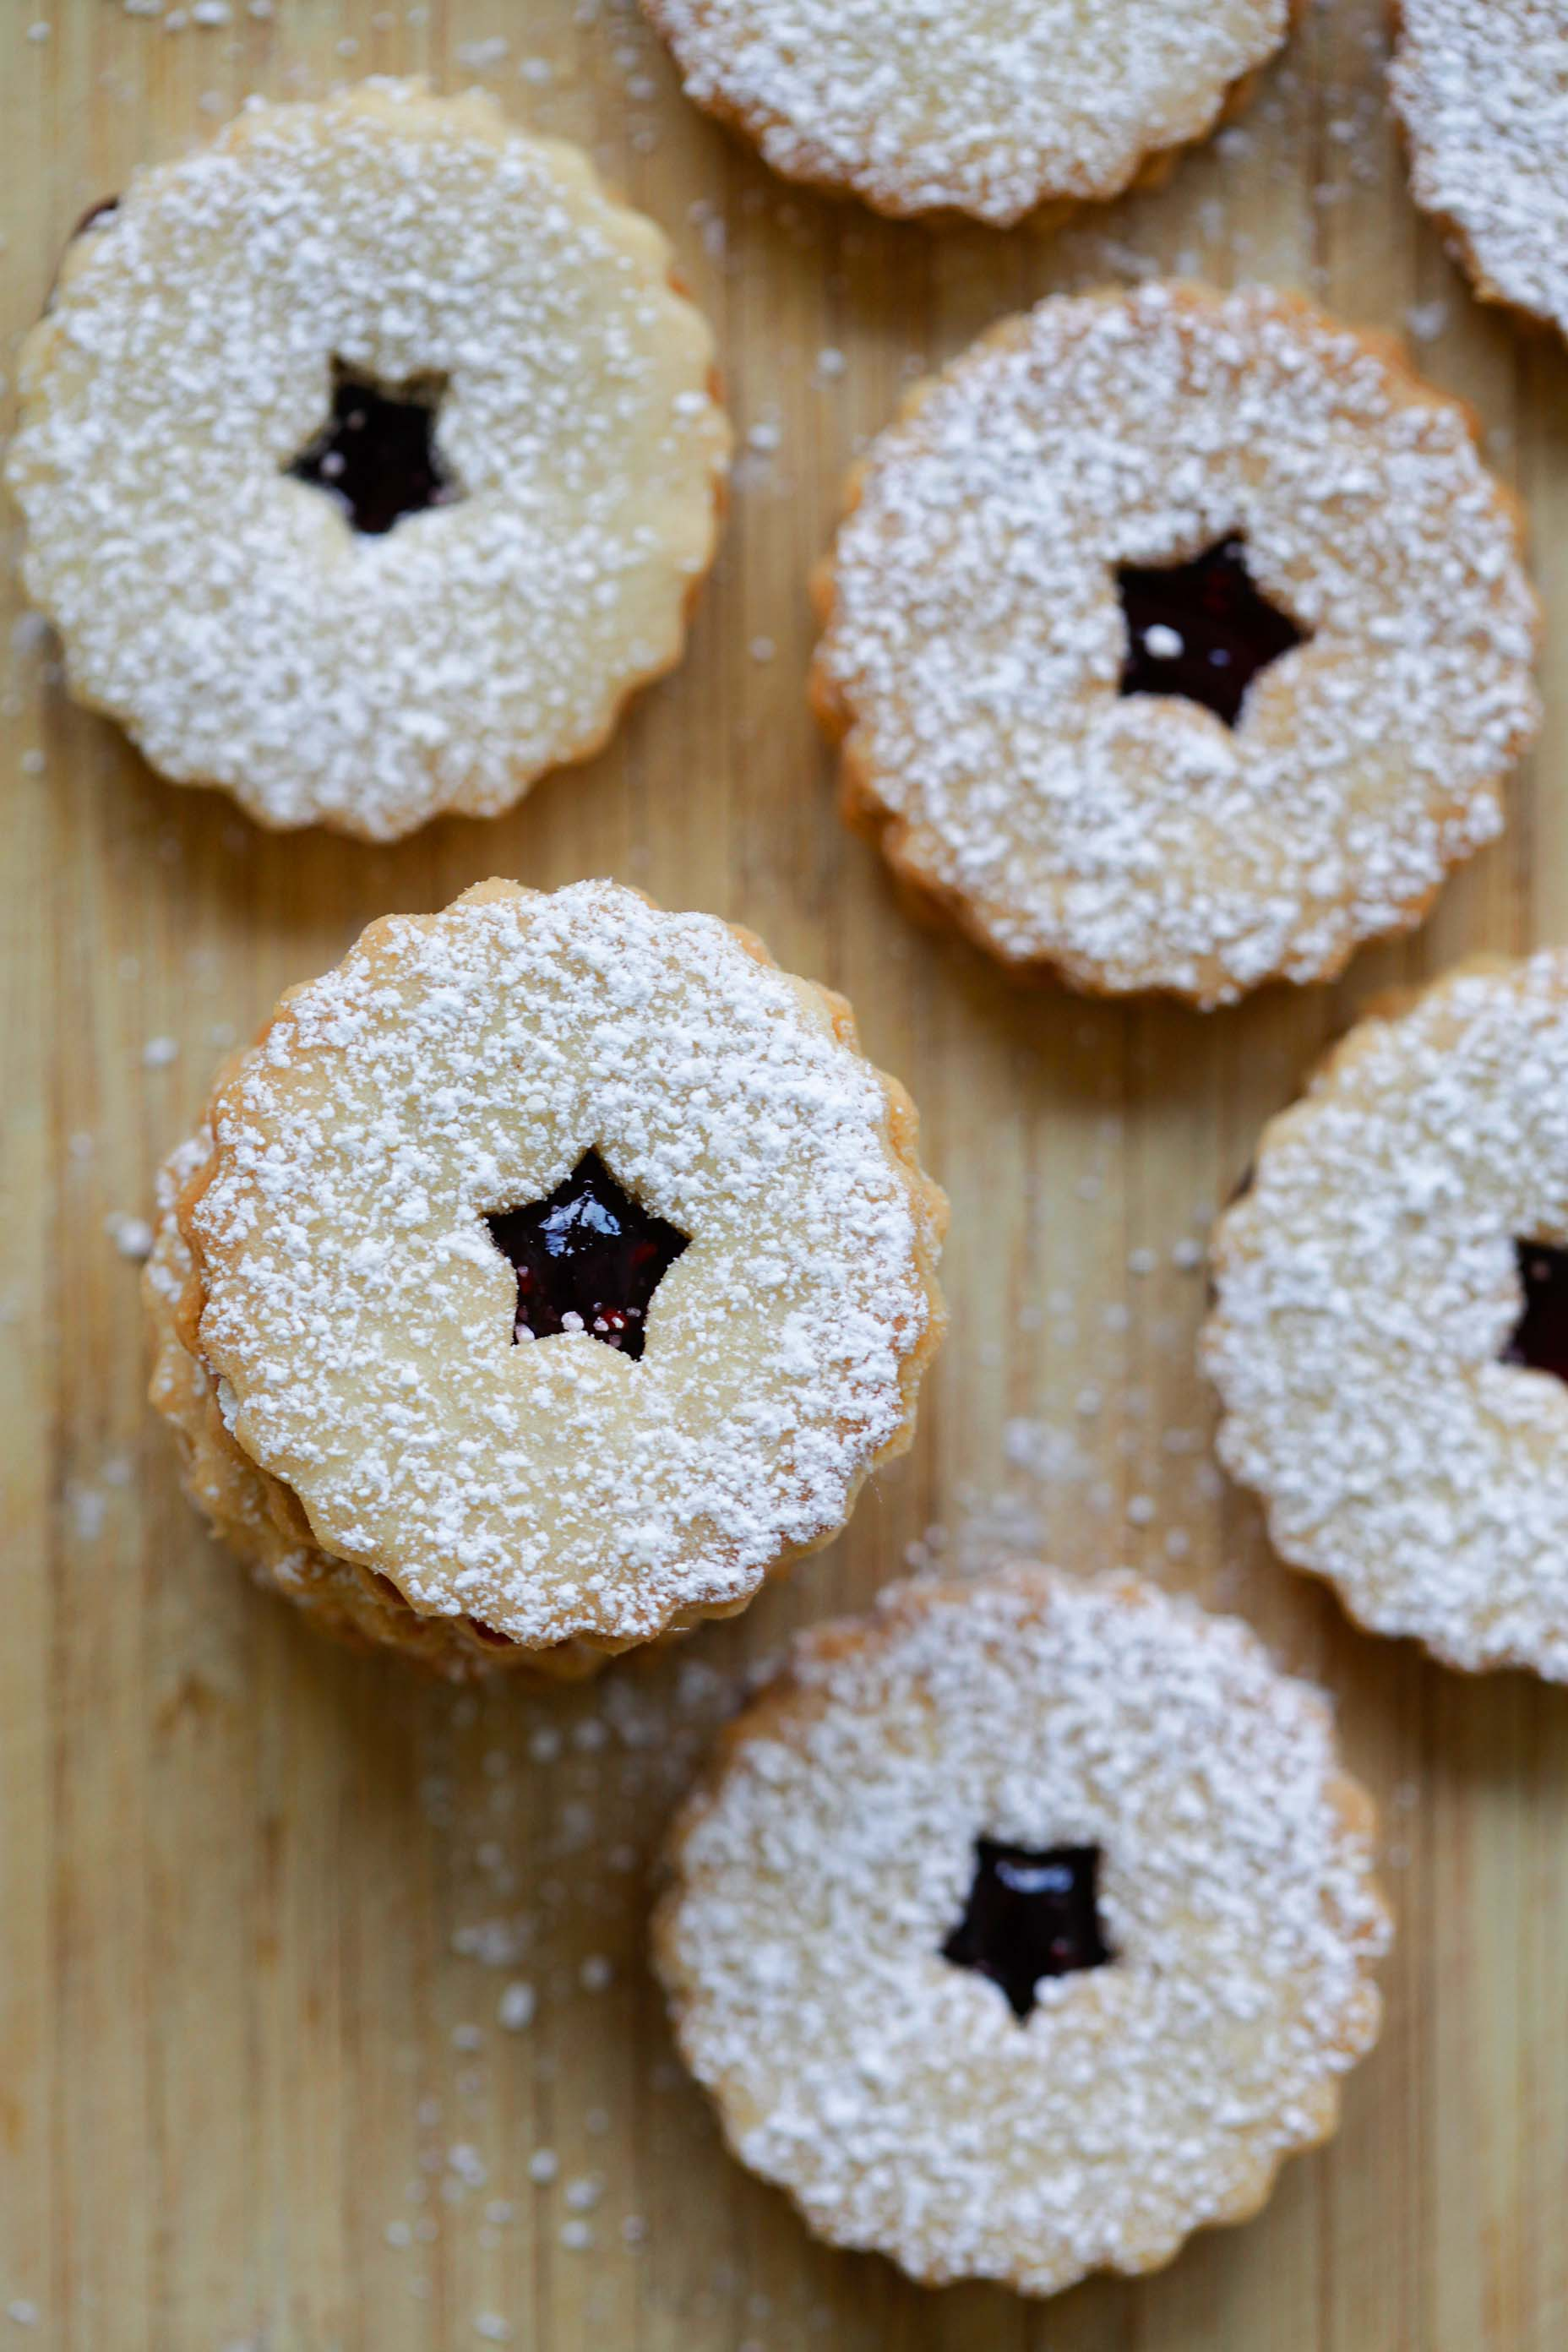 Easy baked mini buttery Linzer tarts with raspberry jam dusted with powdered sugar.